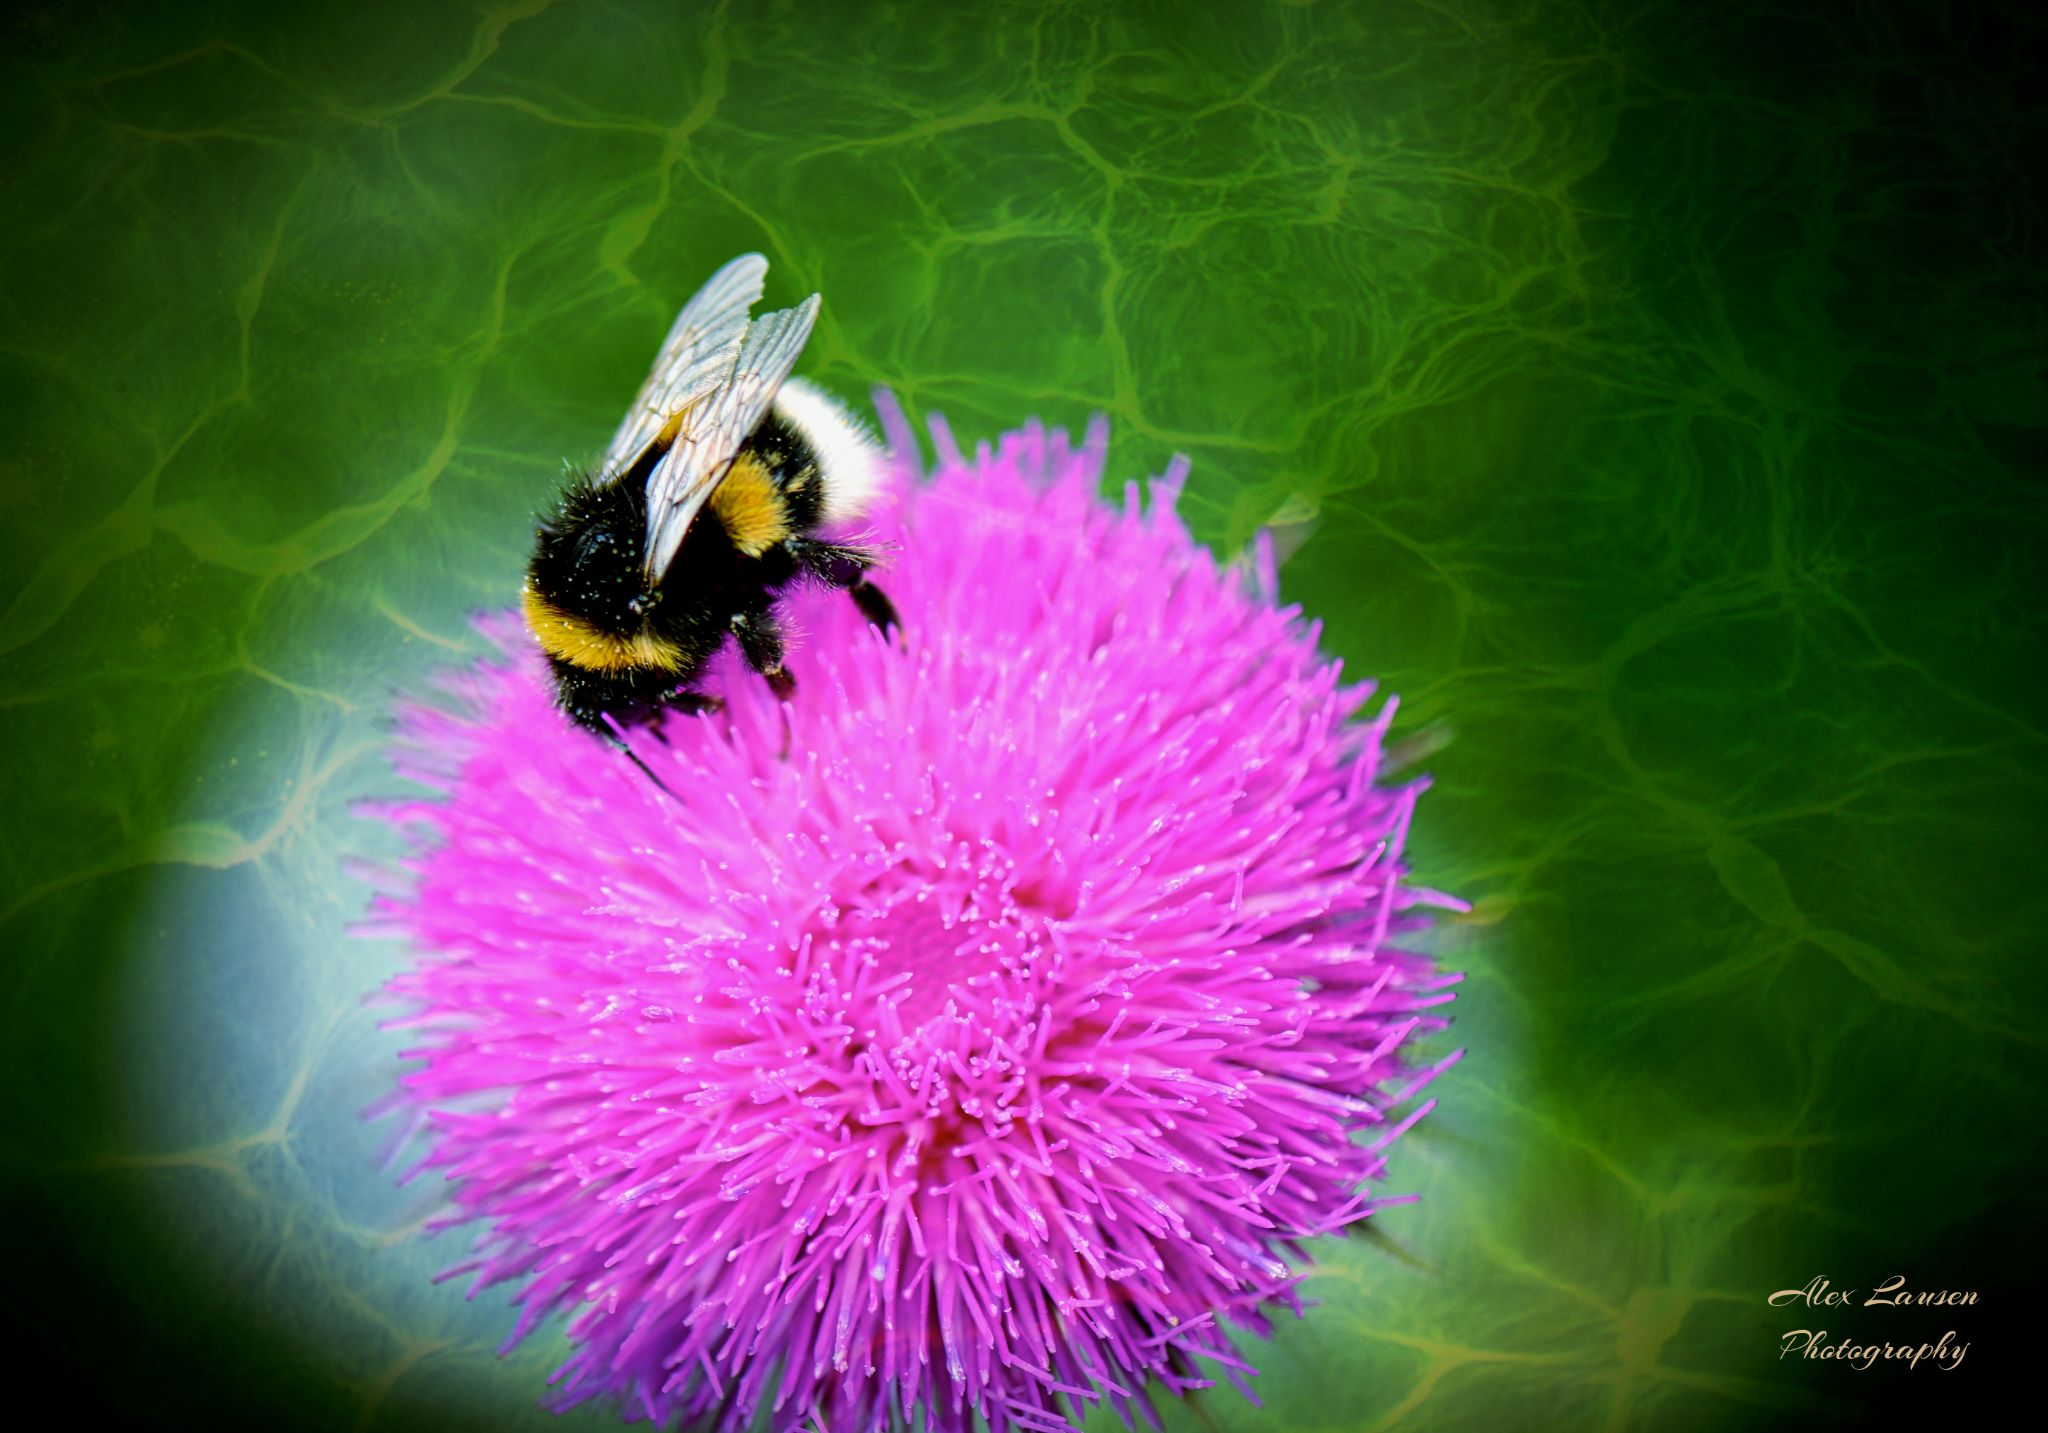 """"""" Bumble Bee and green water """" by Alex Lausen"""